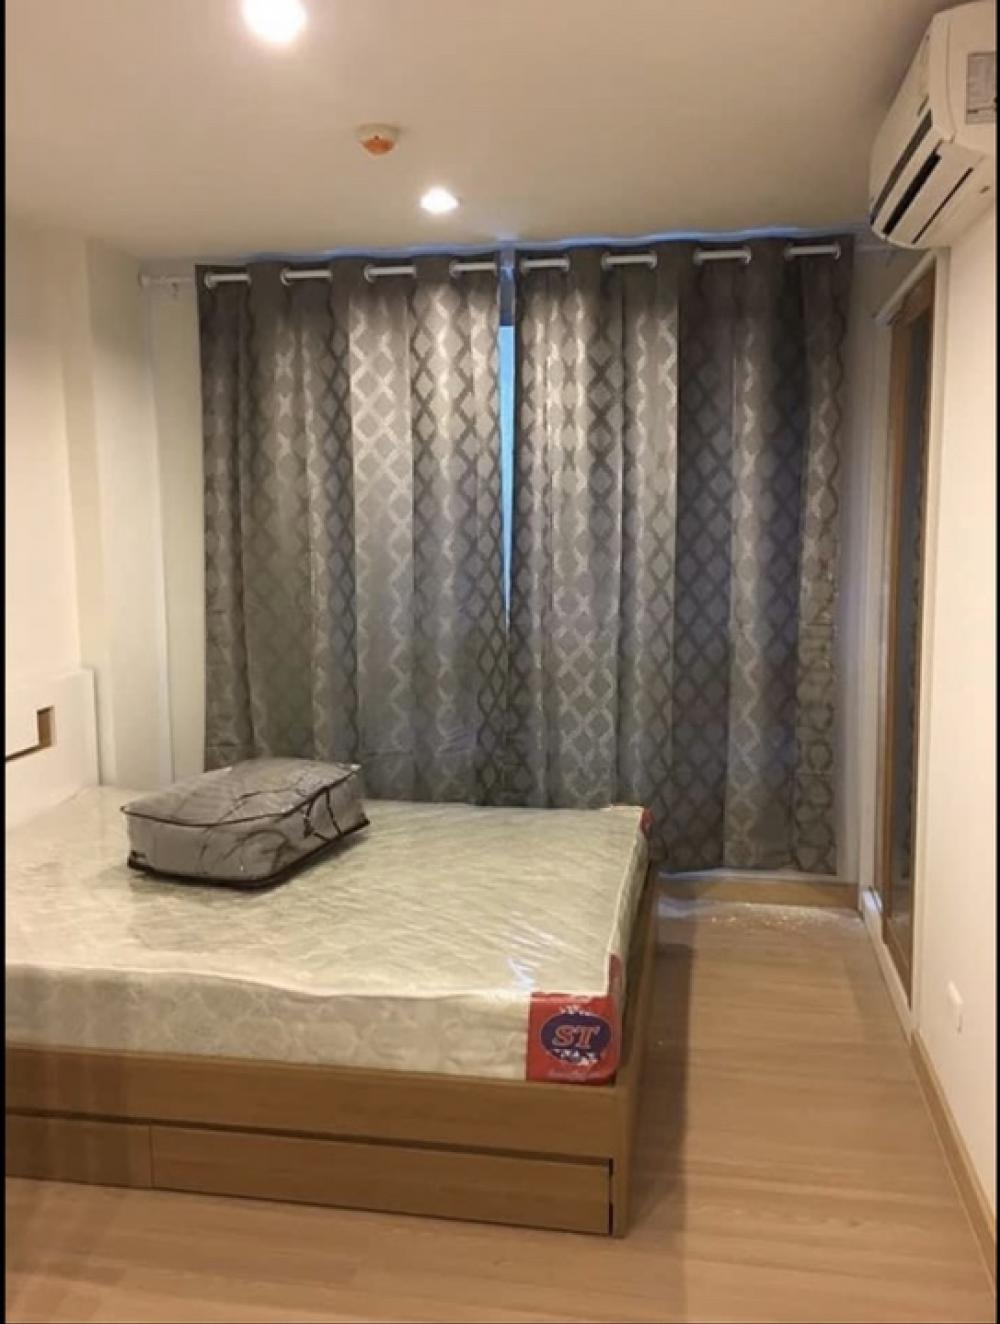 For RentCondoBang kae, Phetkasem : Niche id Bang Khae, near MRT Bang Khae, only 500 meters, fully furnished, ready to move in‼ ️